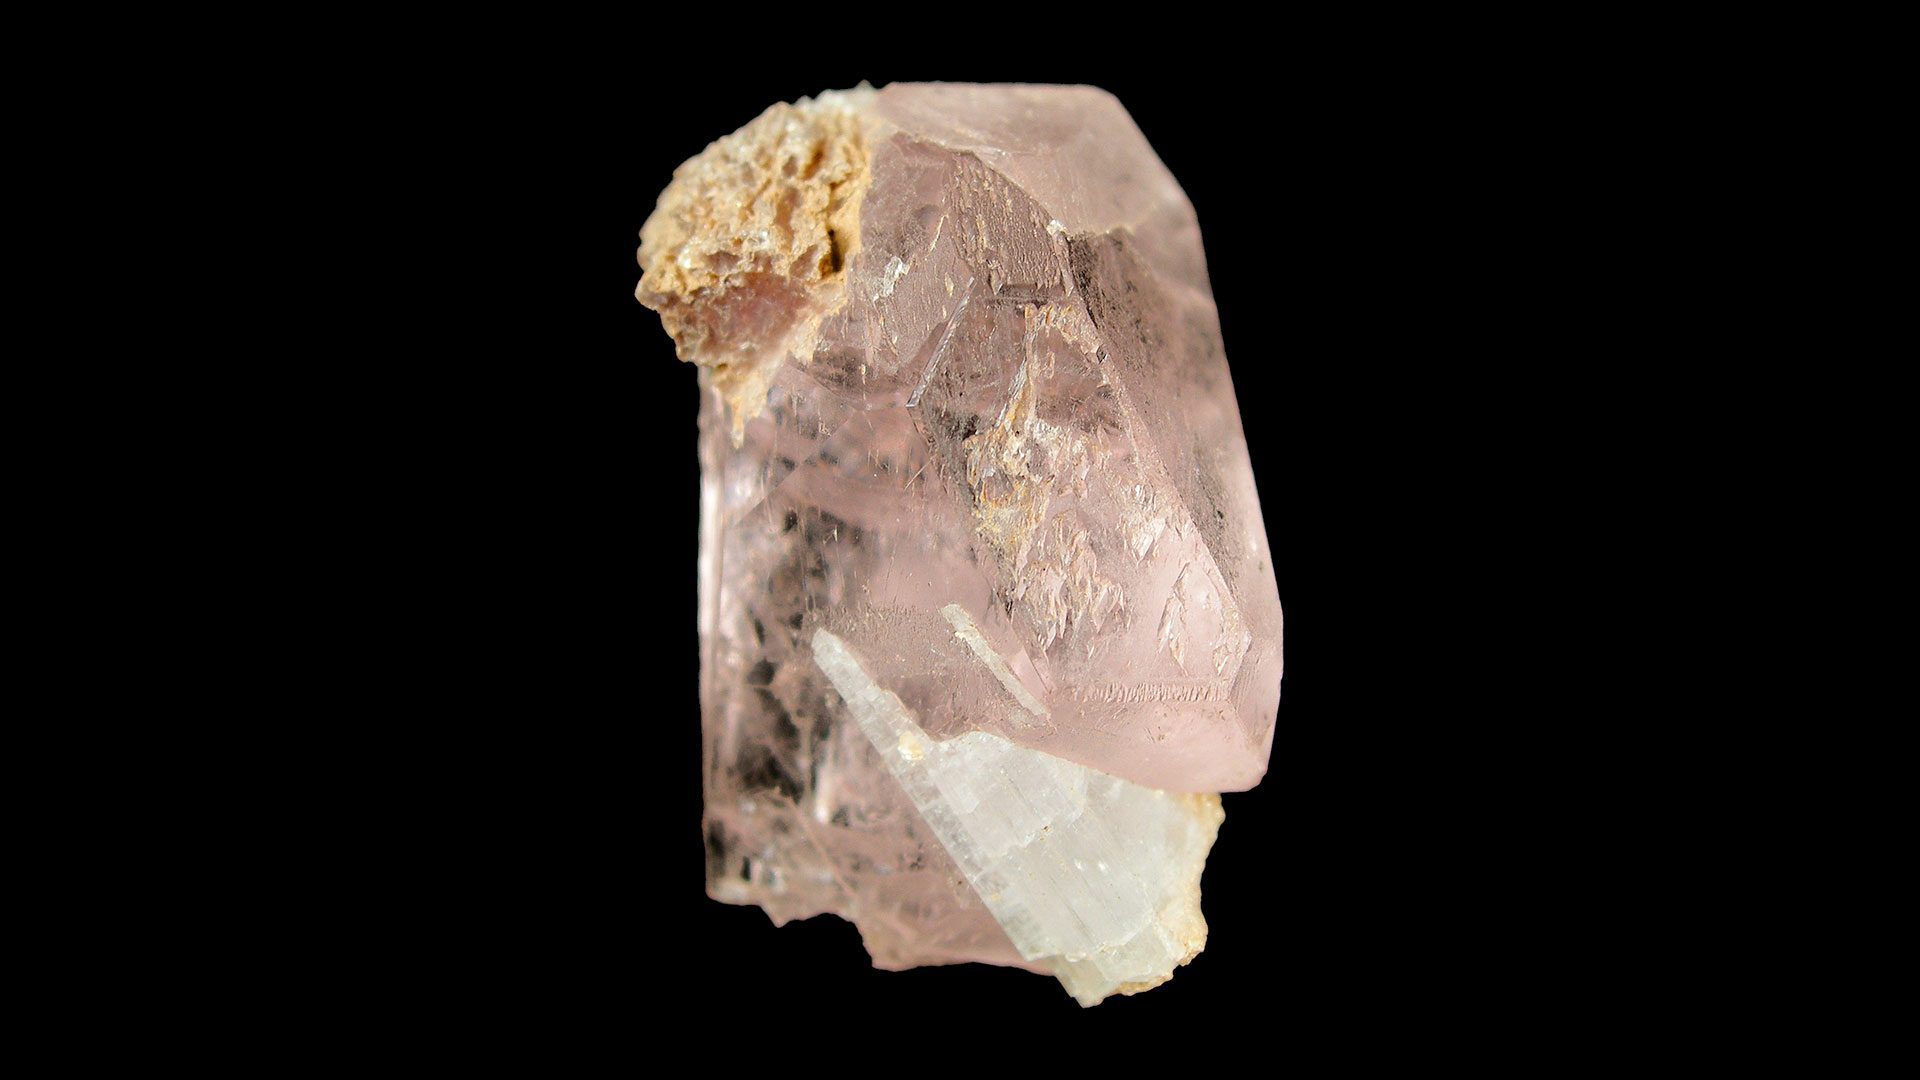 Morganite Crystal Specimen - Photograph by Rob Lavinsky, iRocks.com